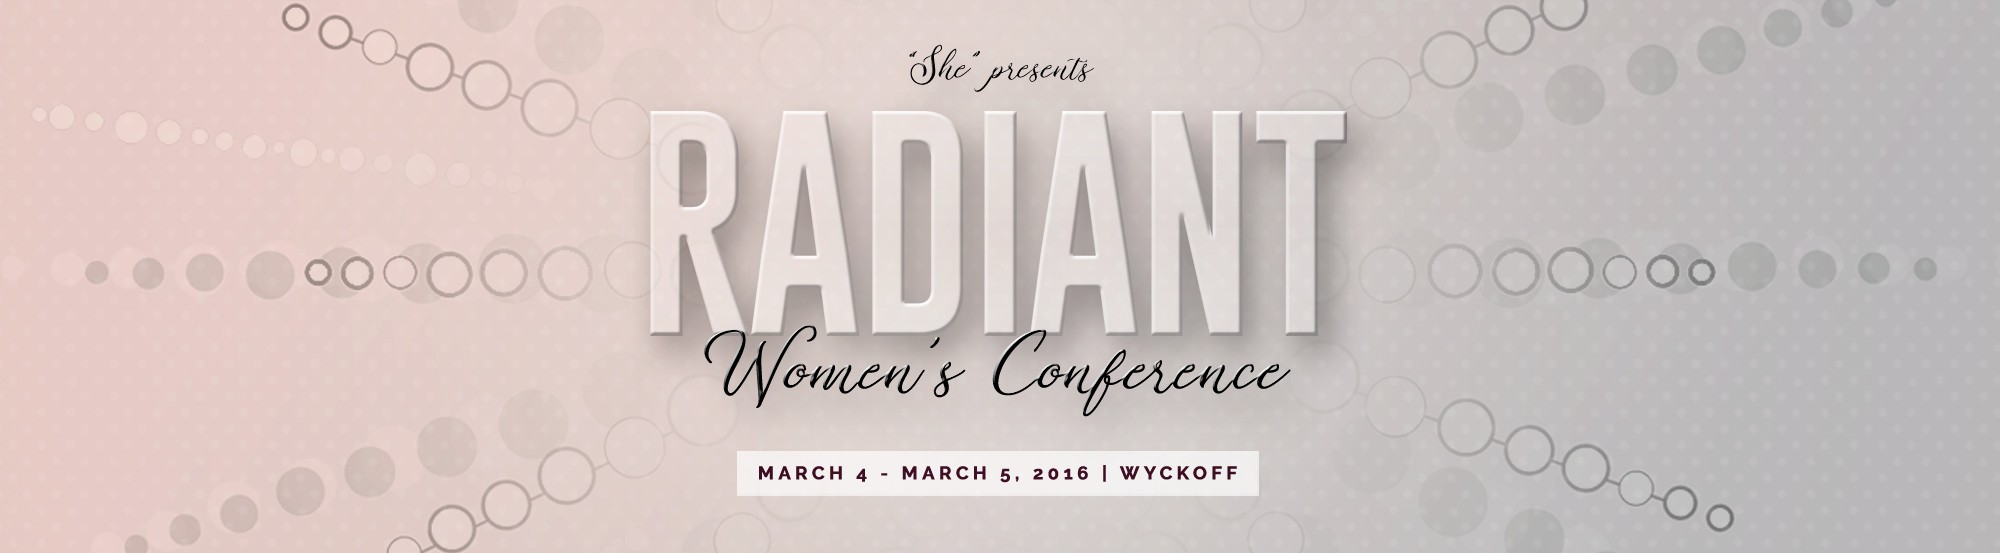 Radiant Conference main